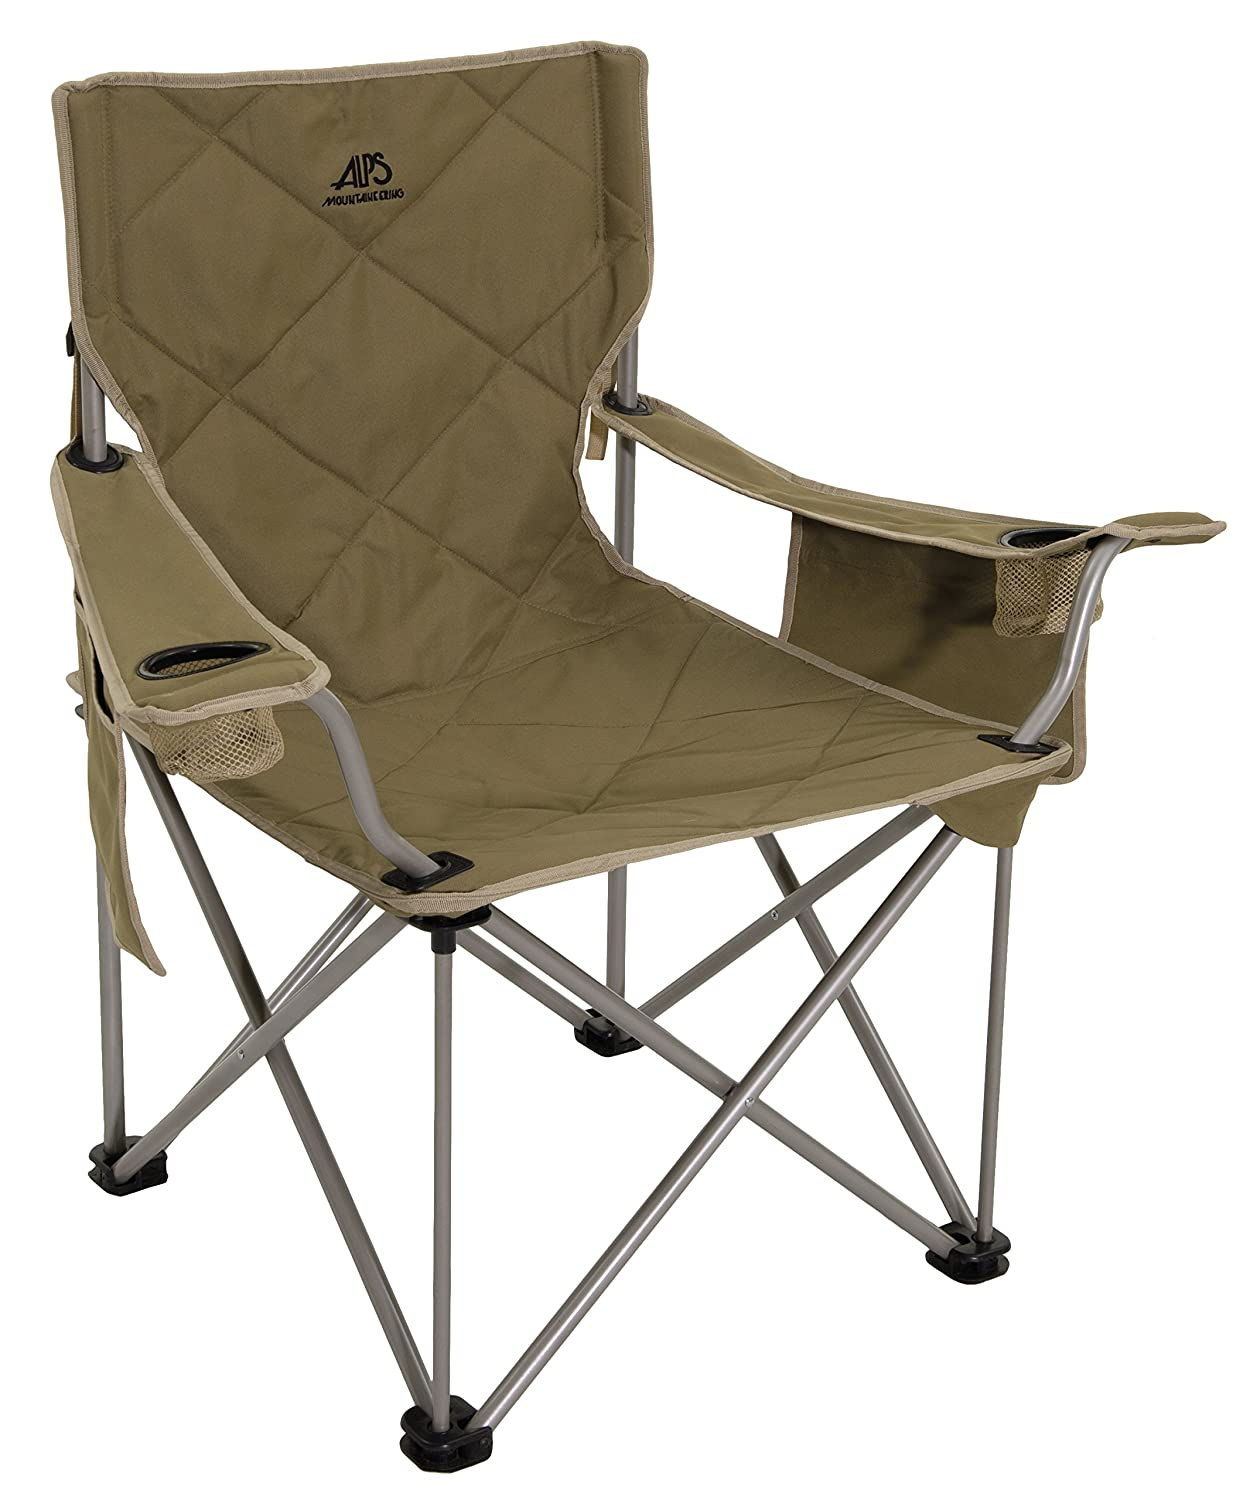 What Are The Best Oversized Beach Chairs For Heavy People